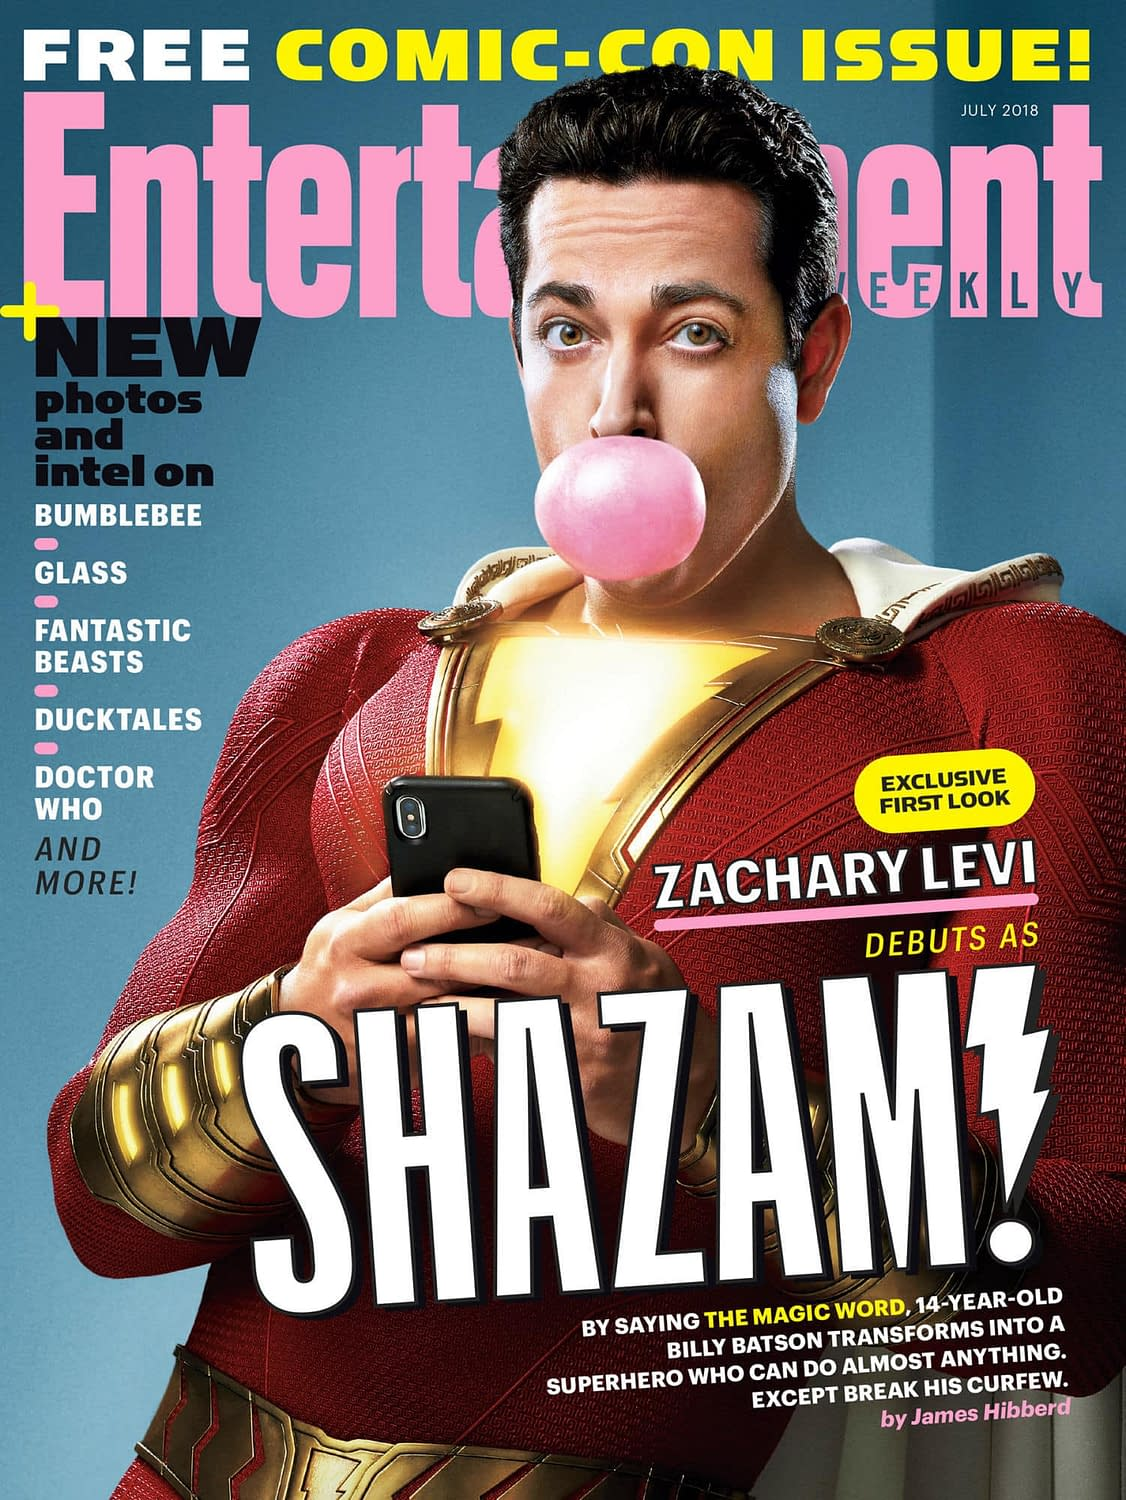 Shazam! is on the Cover of the EW Comic-Con Issue